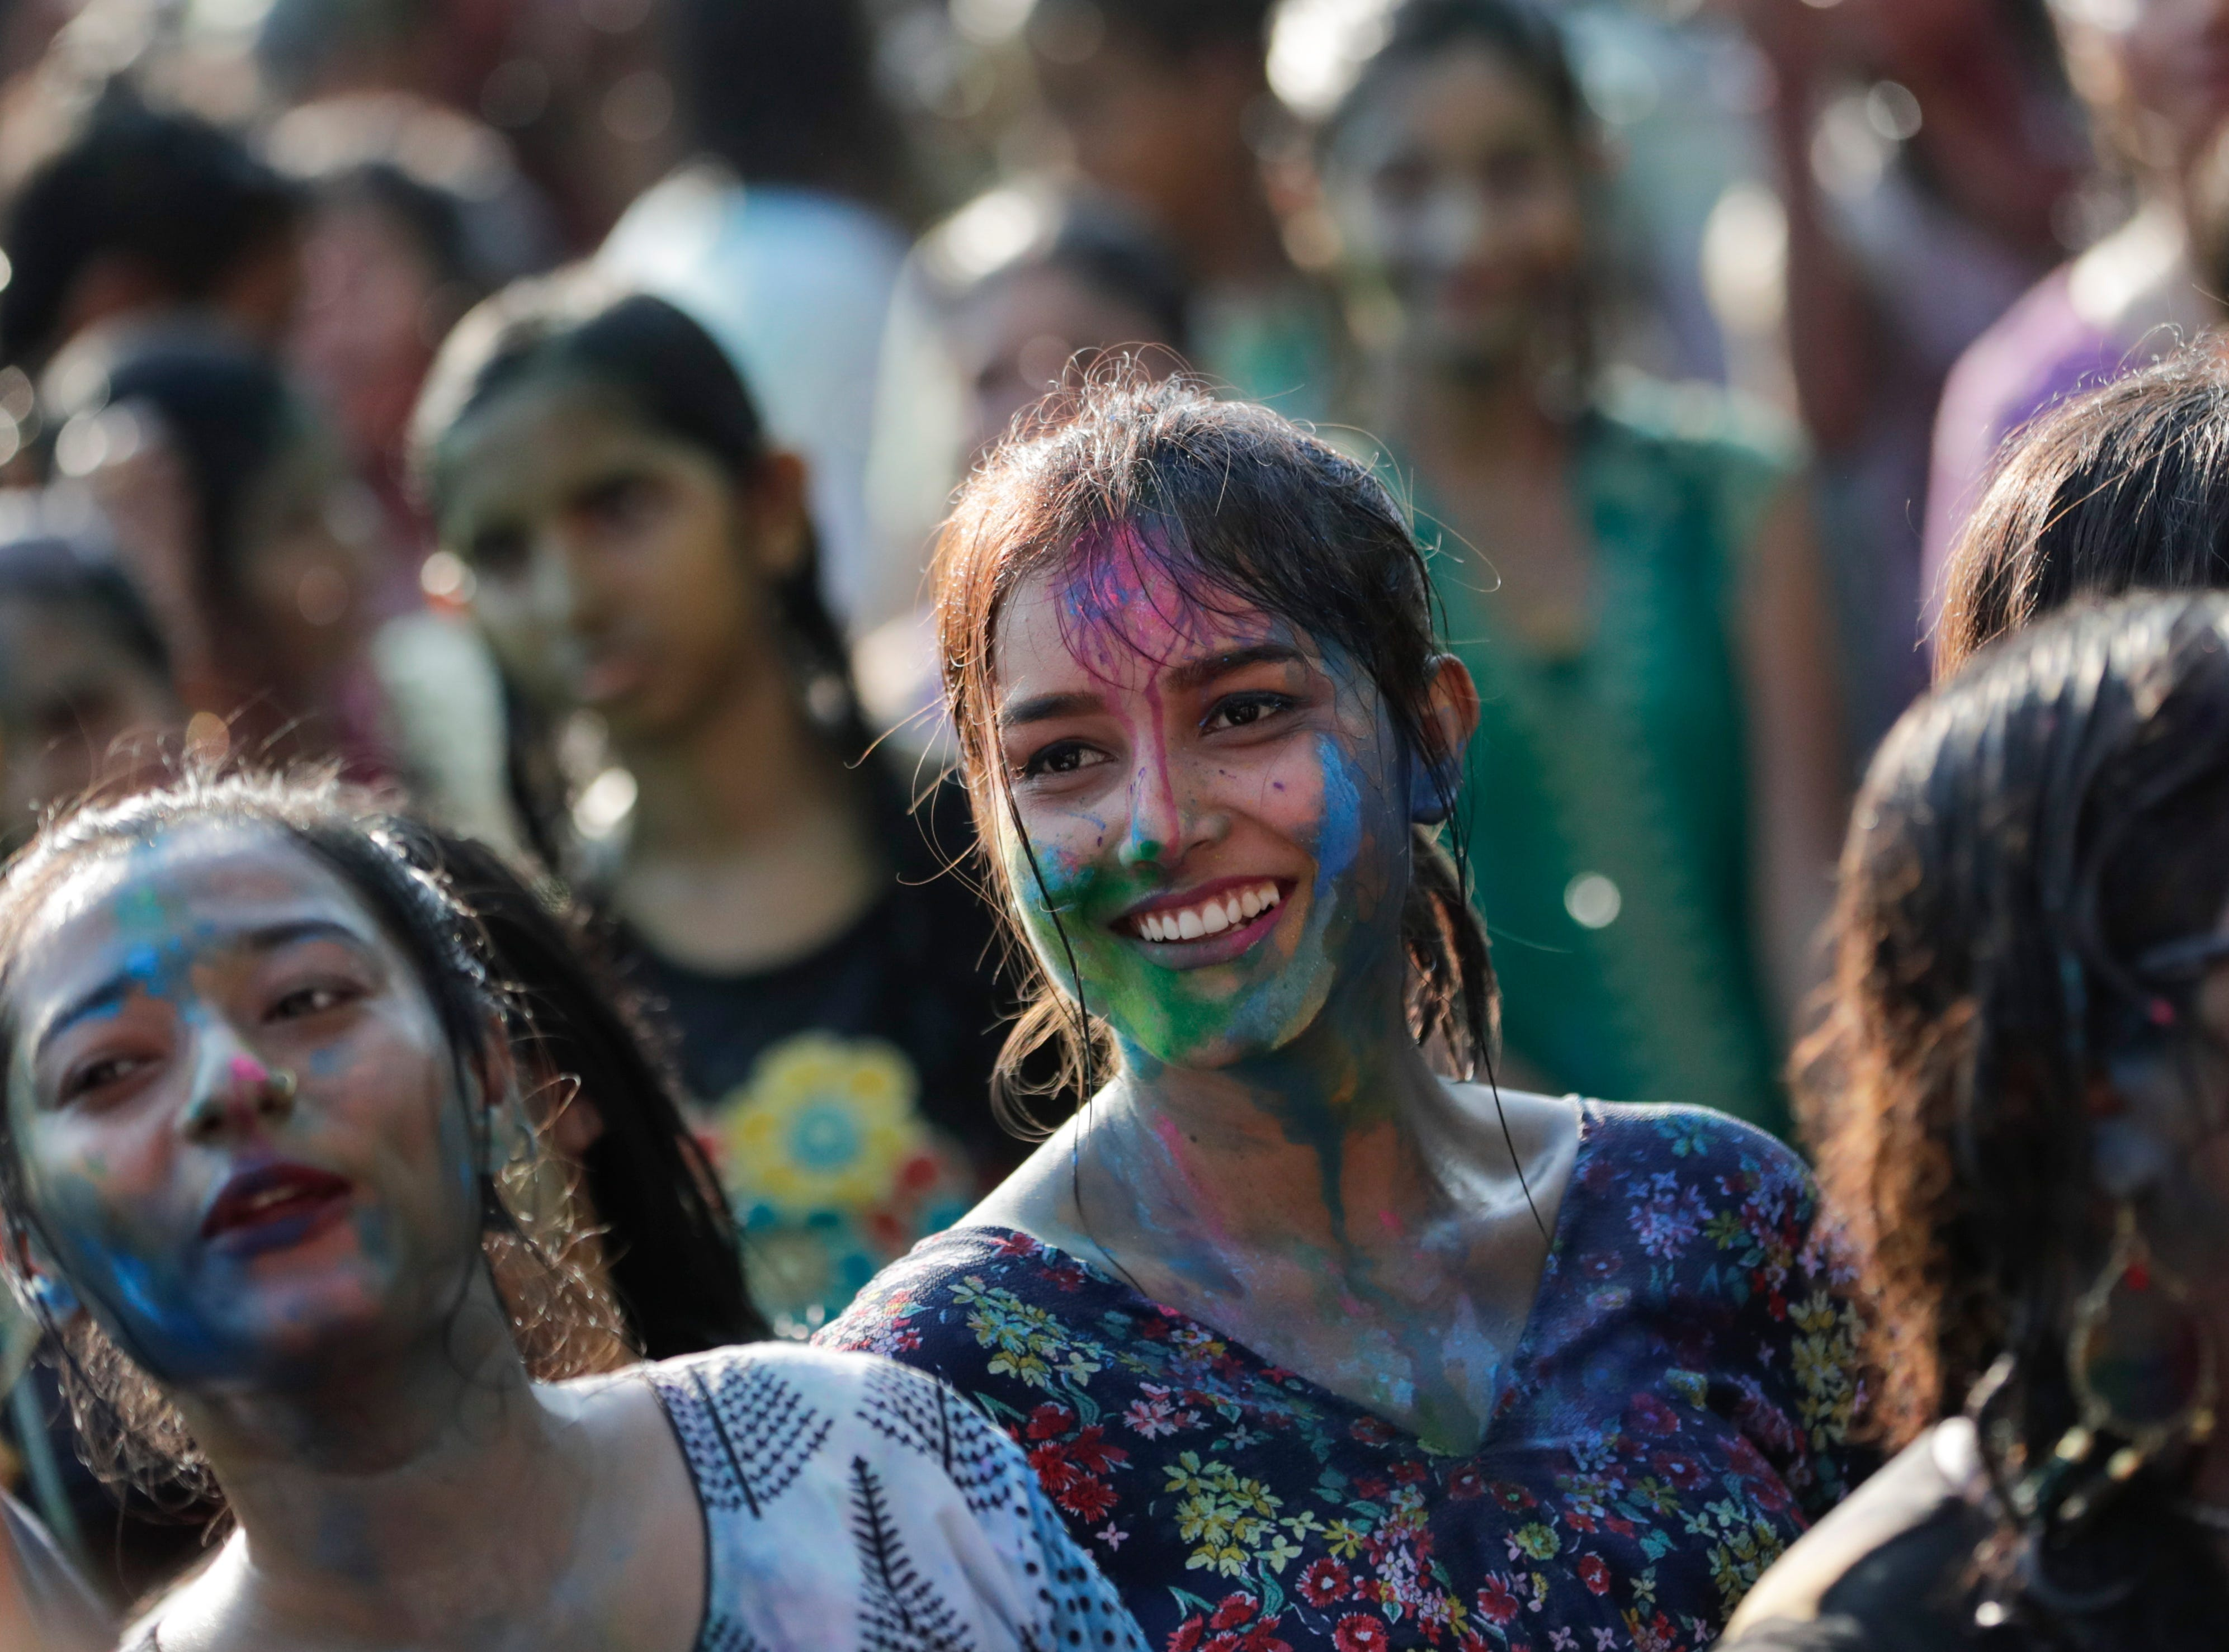 Hindu girls with faces smeared with colored powder take part of the Holi festival celebrations in Yangon, Myanmar on March 20, 2019. Holi is celebrated at the end of the winter season on the last full moon day of the lunar month Phalguna in Hindu calendar which usually falls in the later part of February or March and is celebrated by people throwing colored powder and colored water at each other.